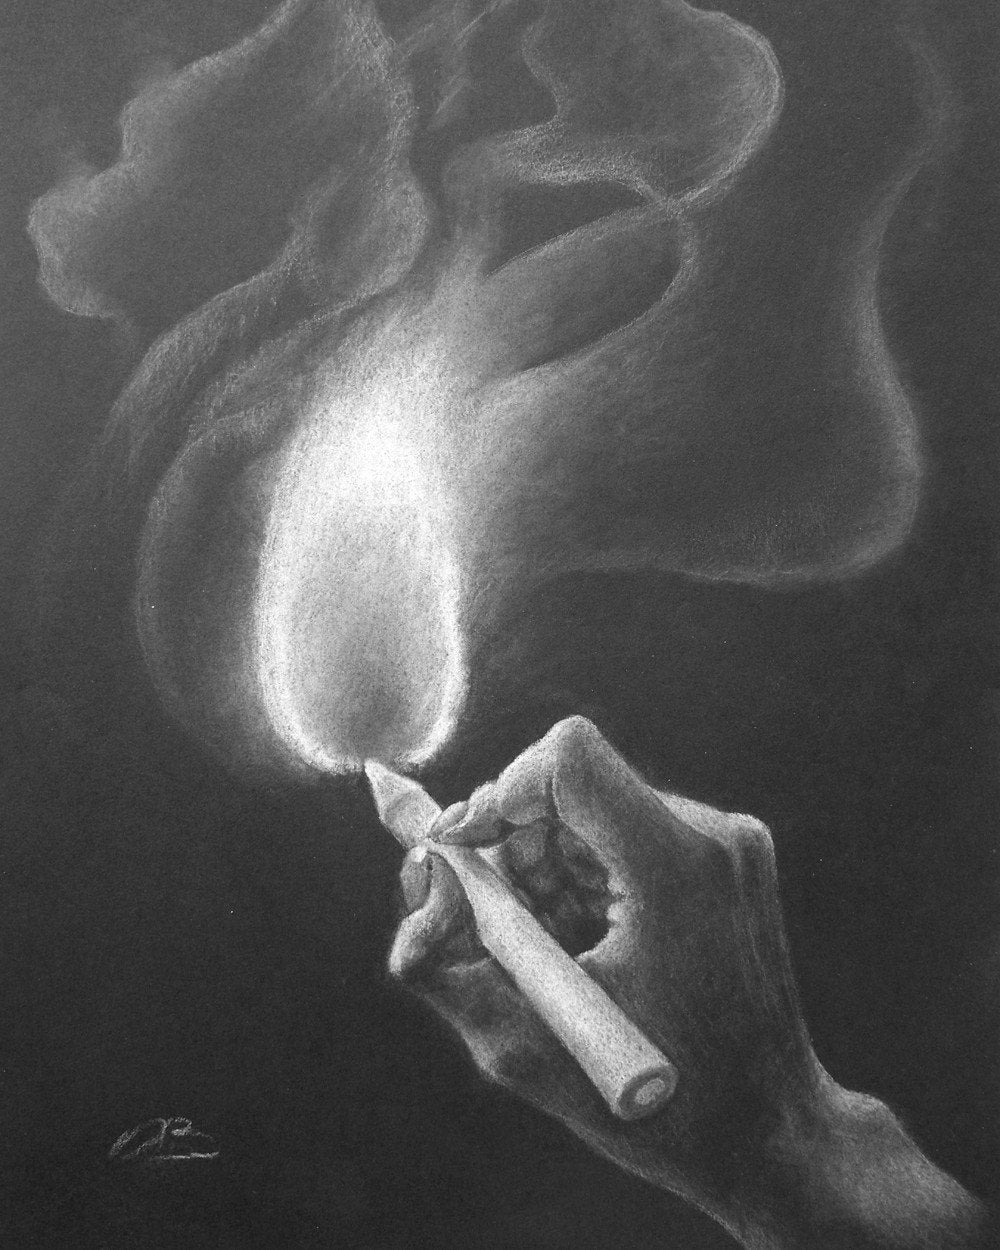 Black and white drawing print, hand, pencil, flame and smoke